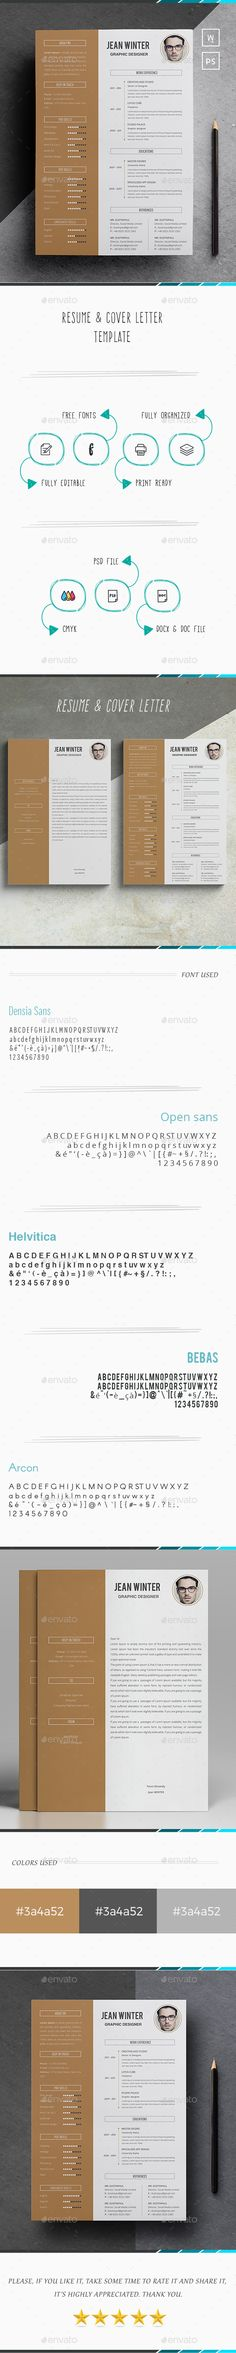 simple Word Resume Stationery template design minimal